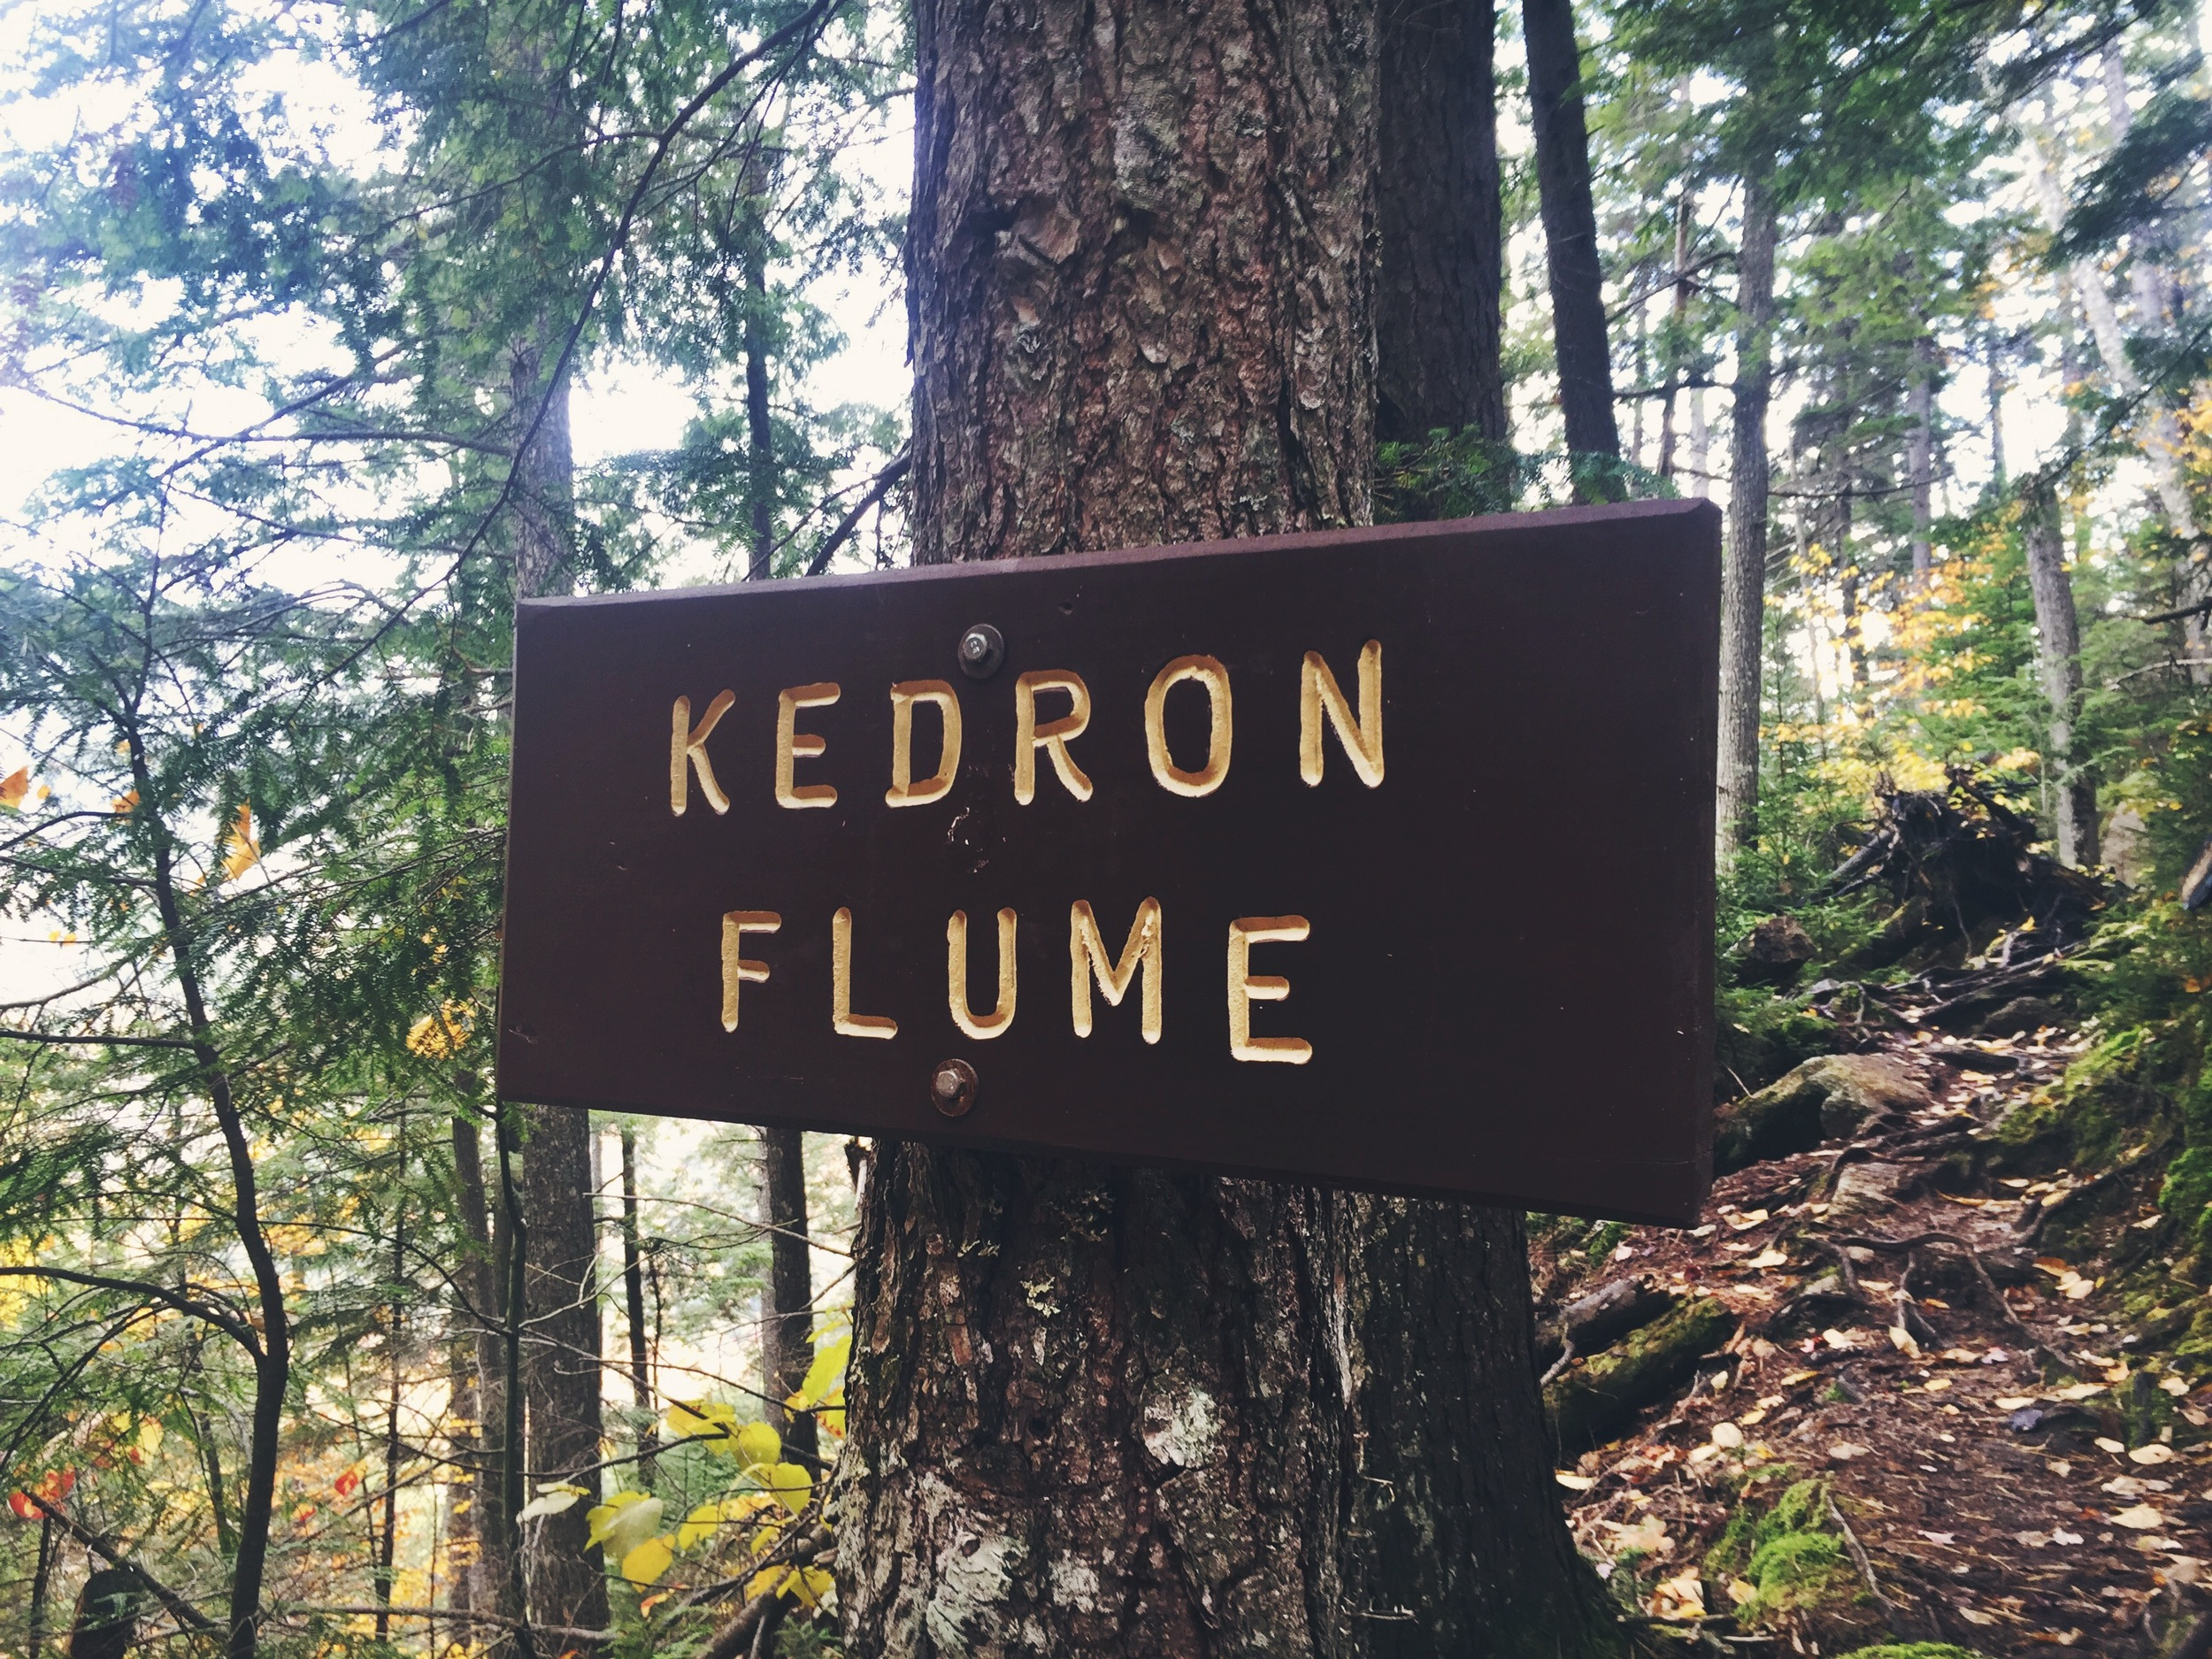 Kedron Flume, a waterfall and small open gorge.